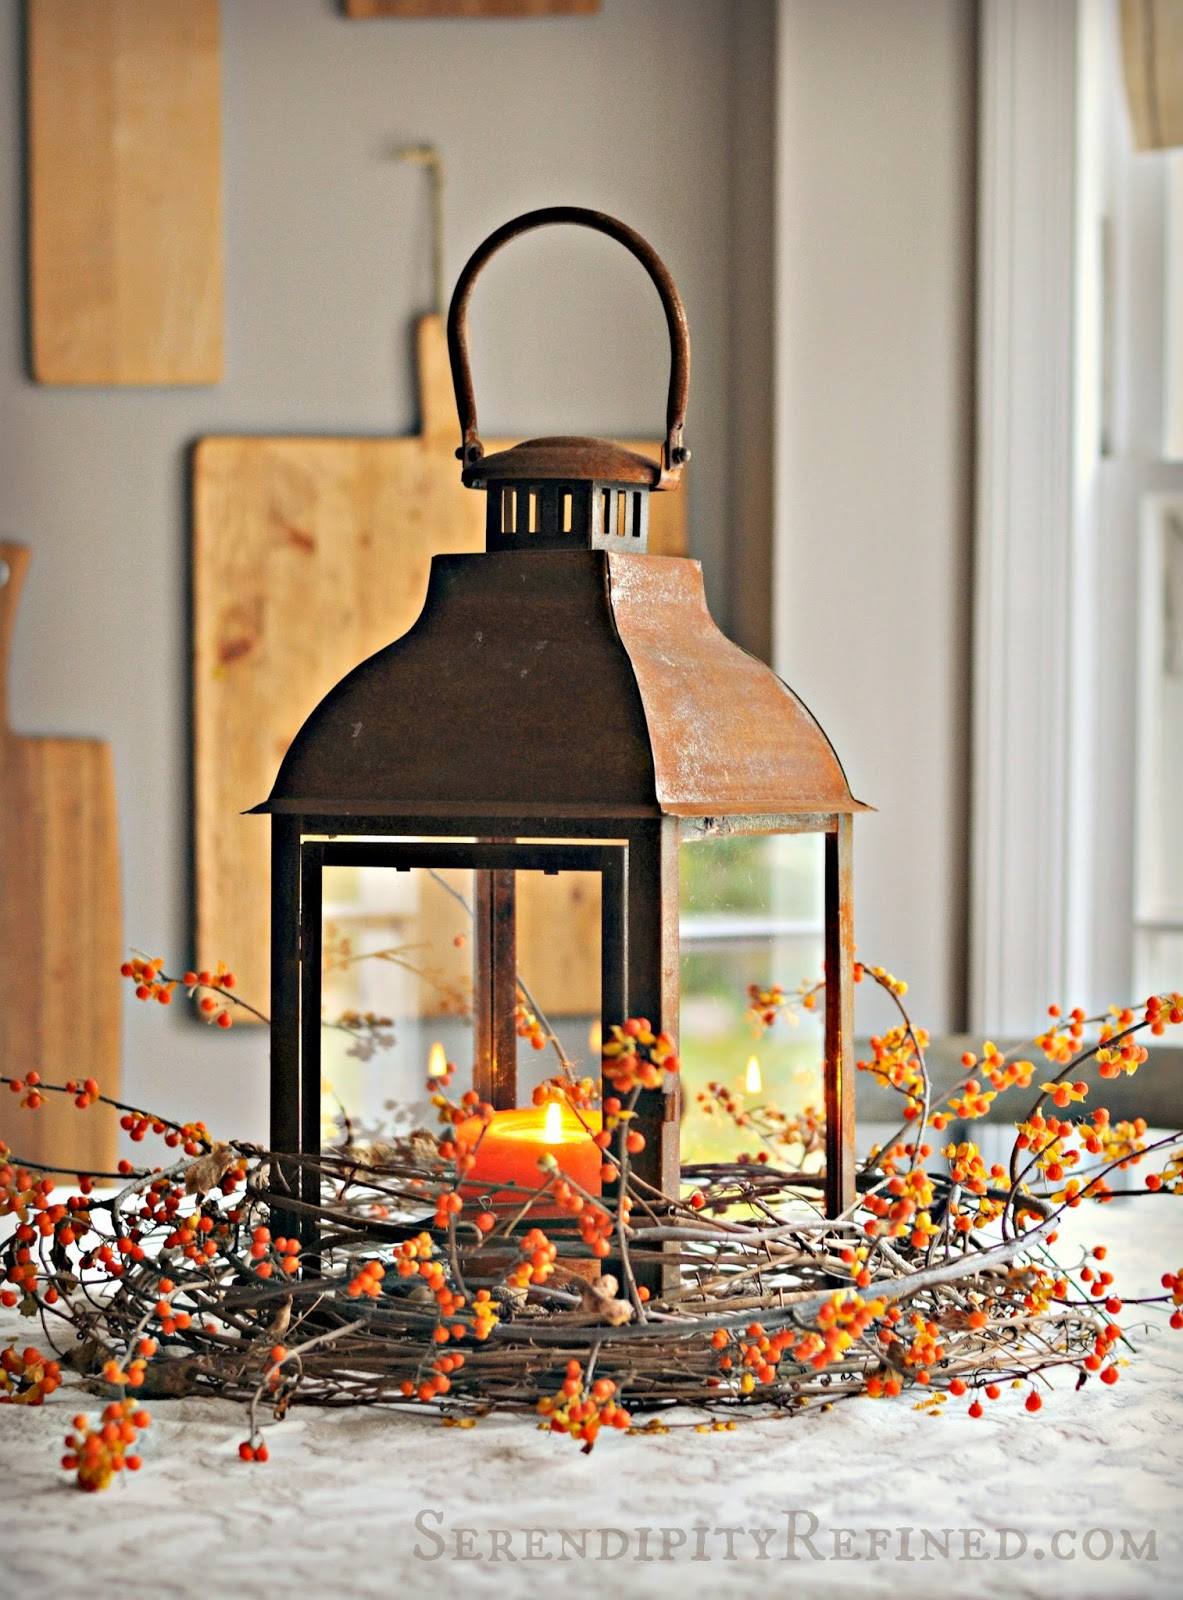 Serendipity refined rusty lantern and bittersweet